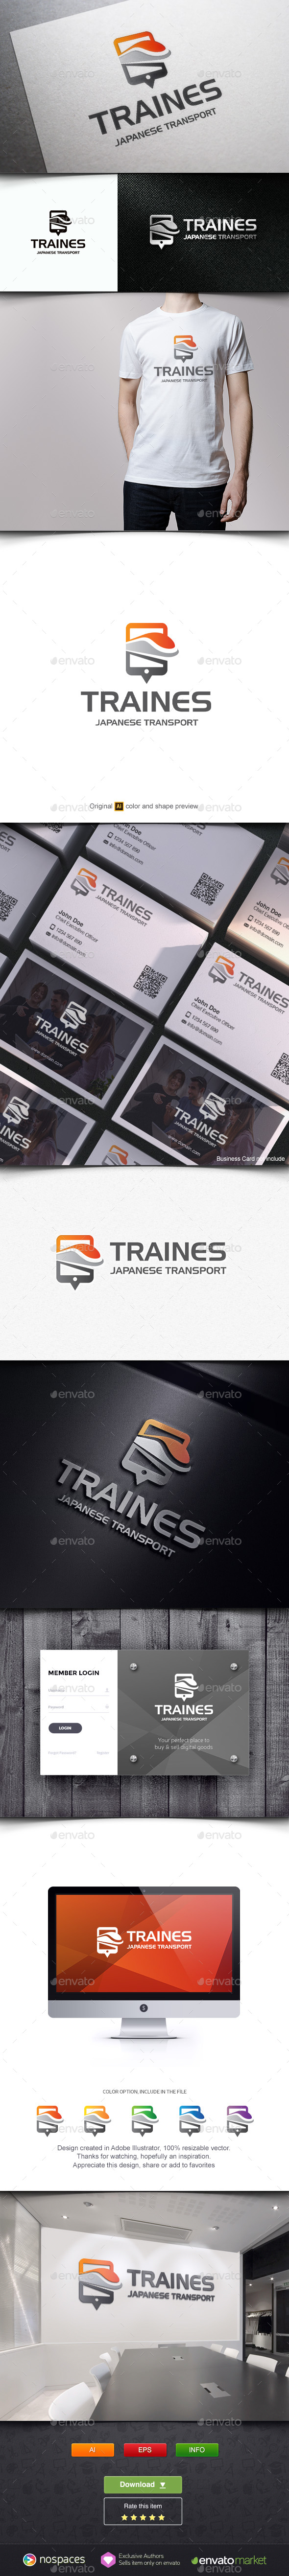 Train Mobile Locator Logo - Objects Logo Templates